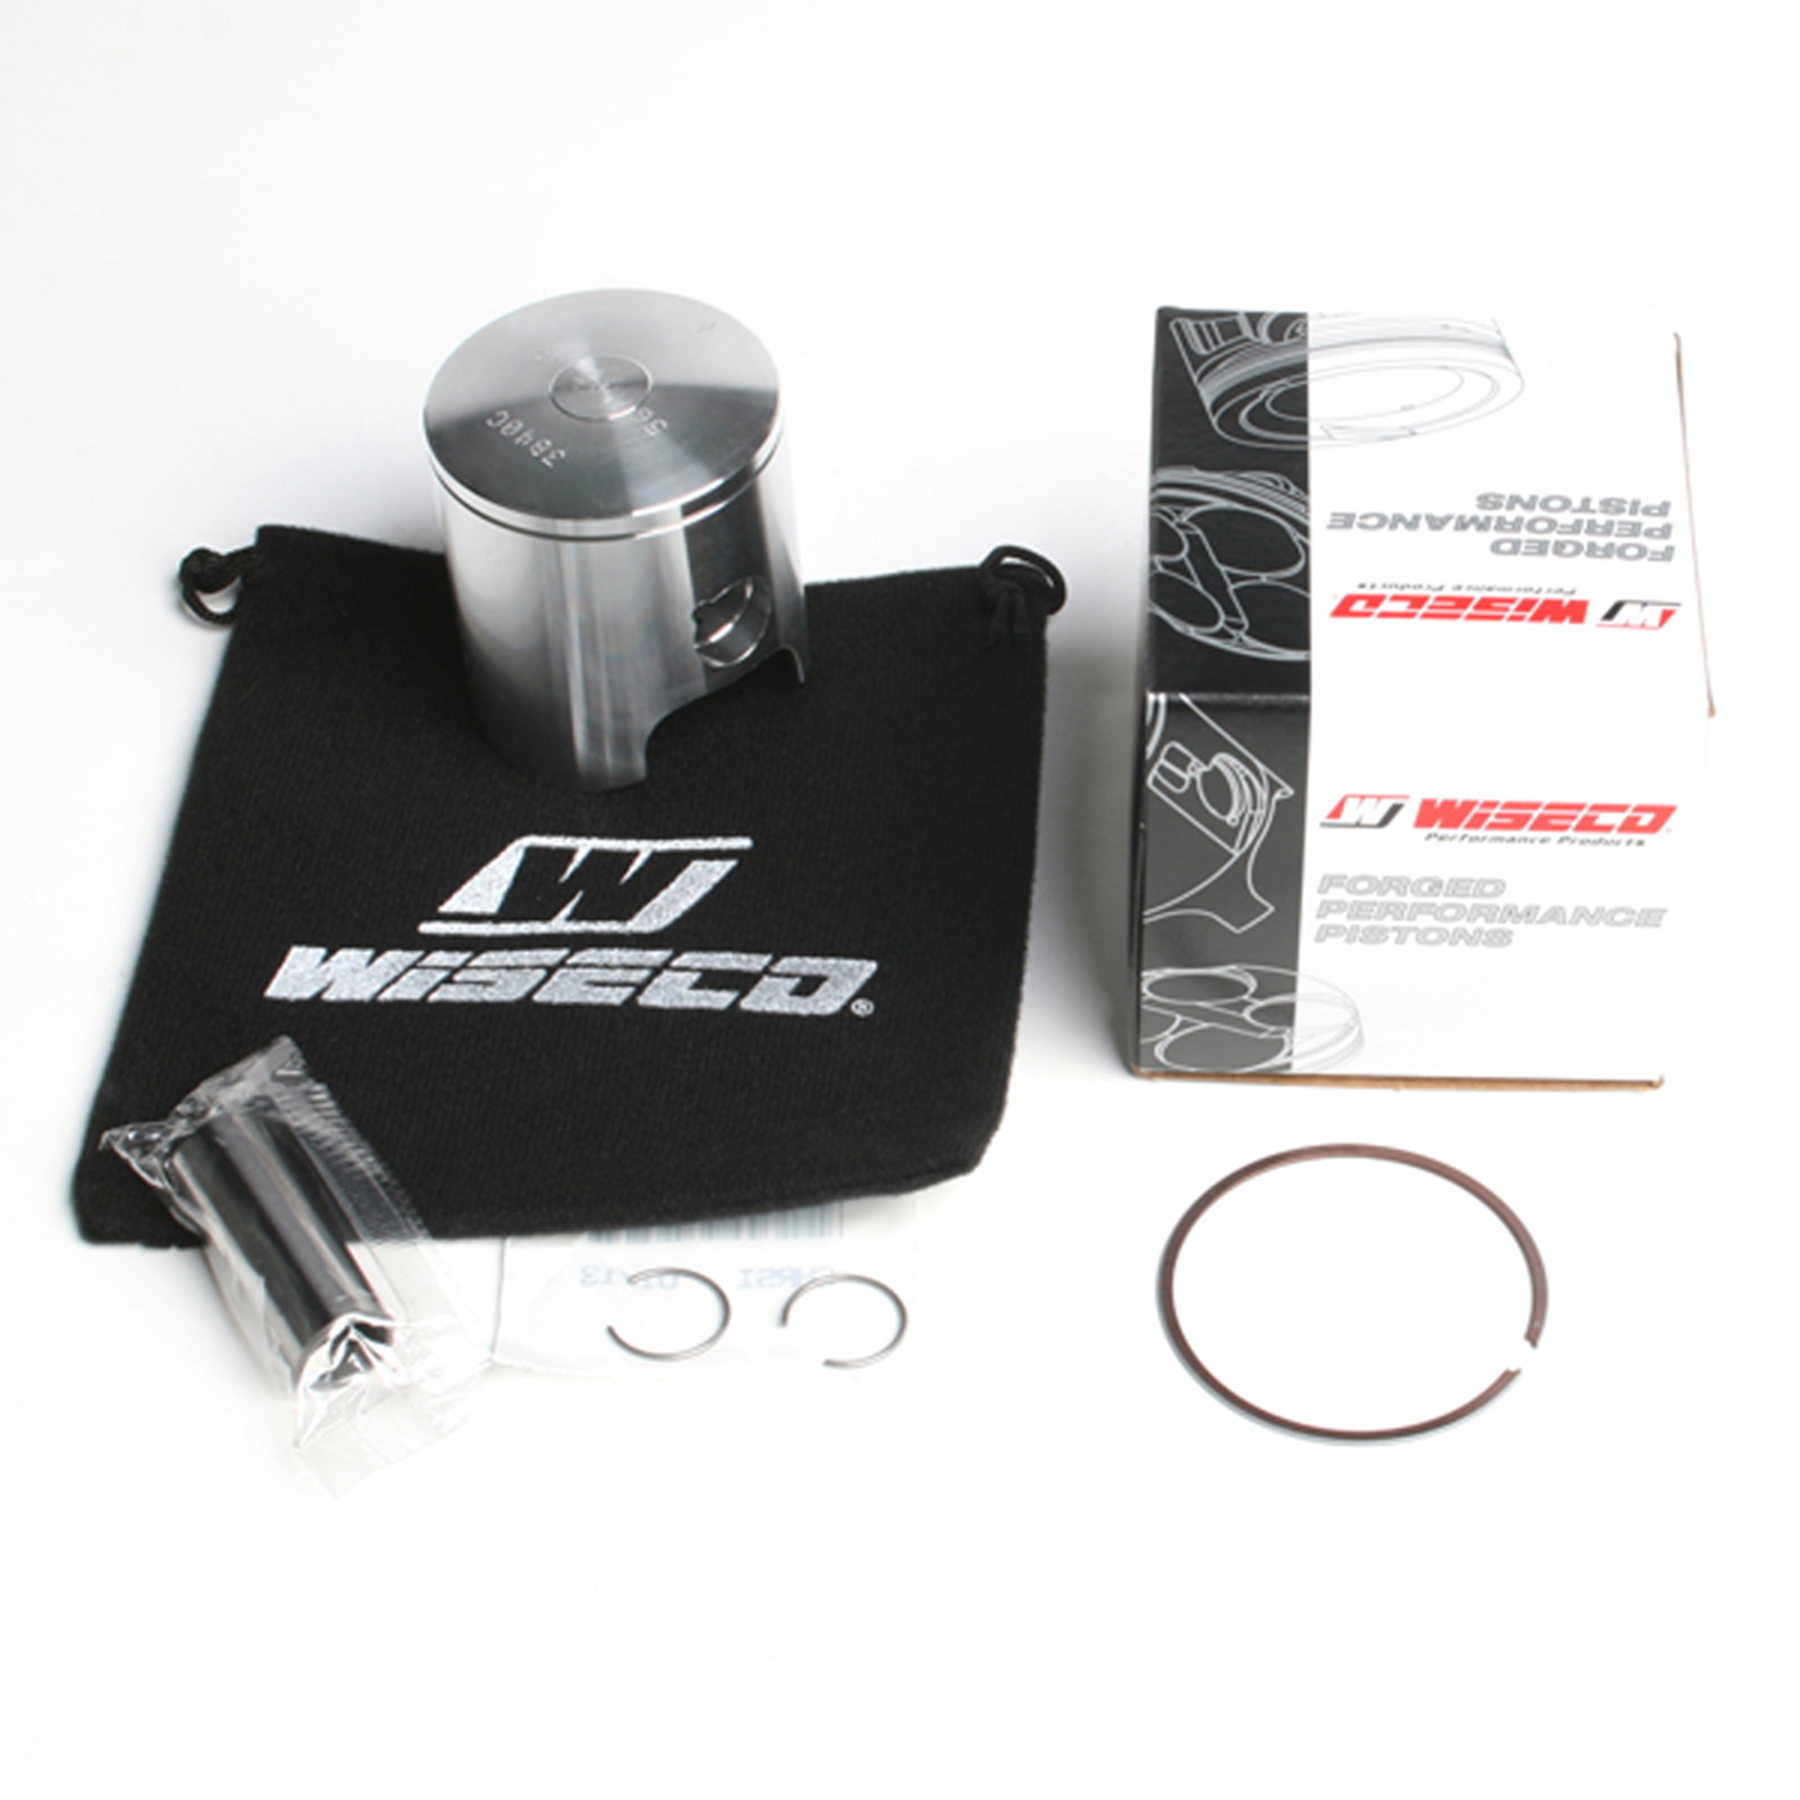 Wiseco - 564M05600 - Piston Kit, 2.00mm Oversize to 56.00mm